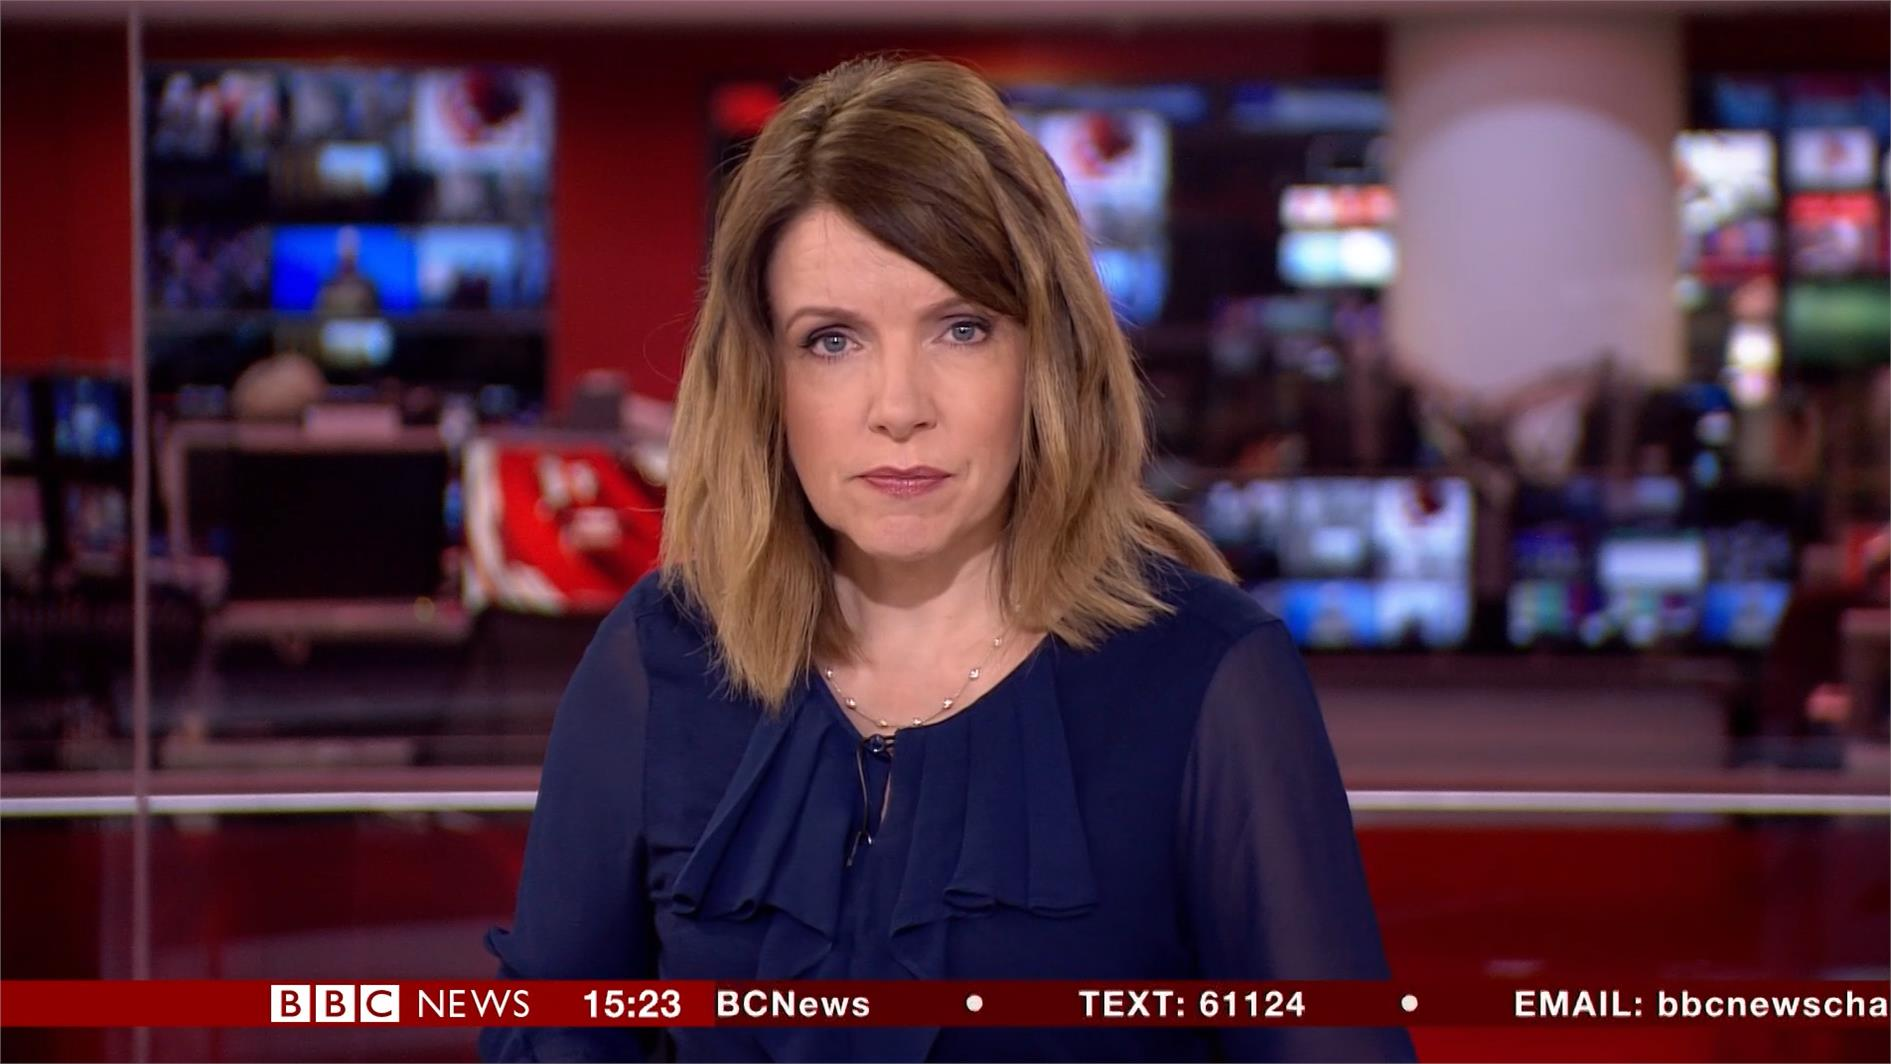 Annita McVeigh - BBC News Presenter (1)